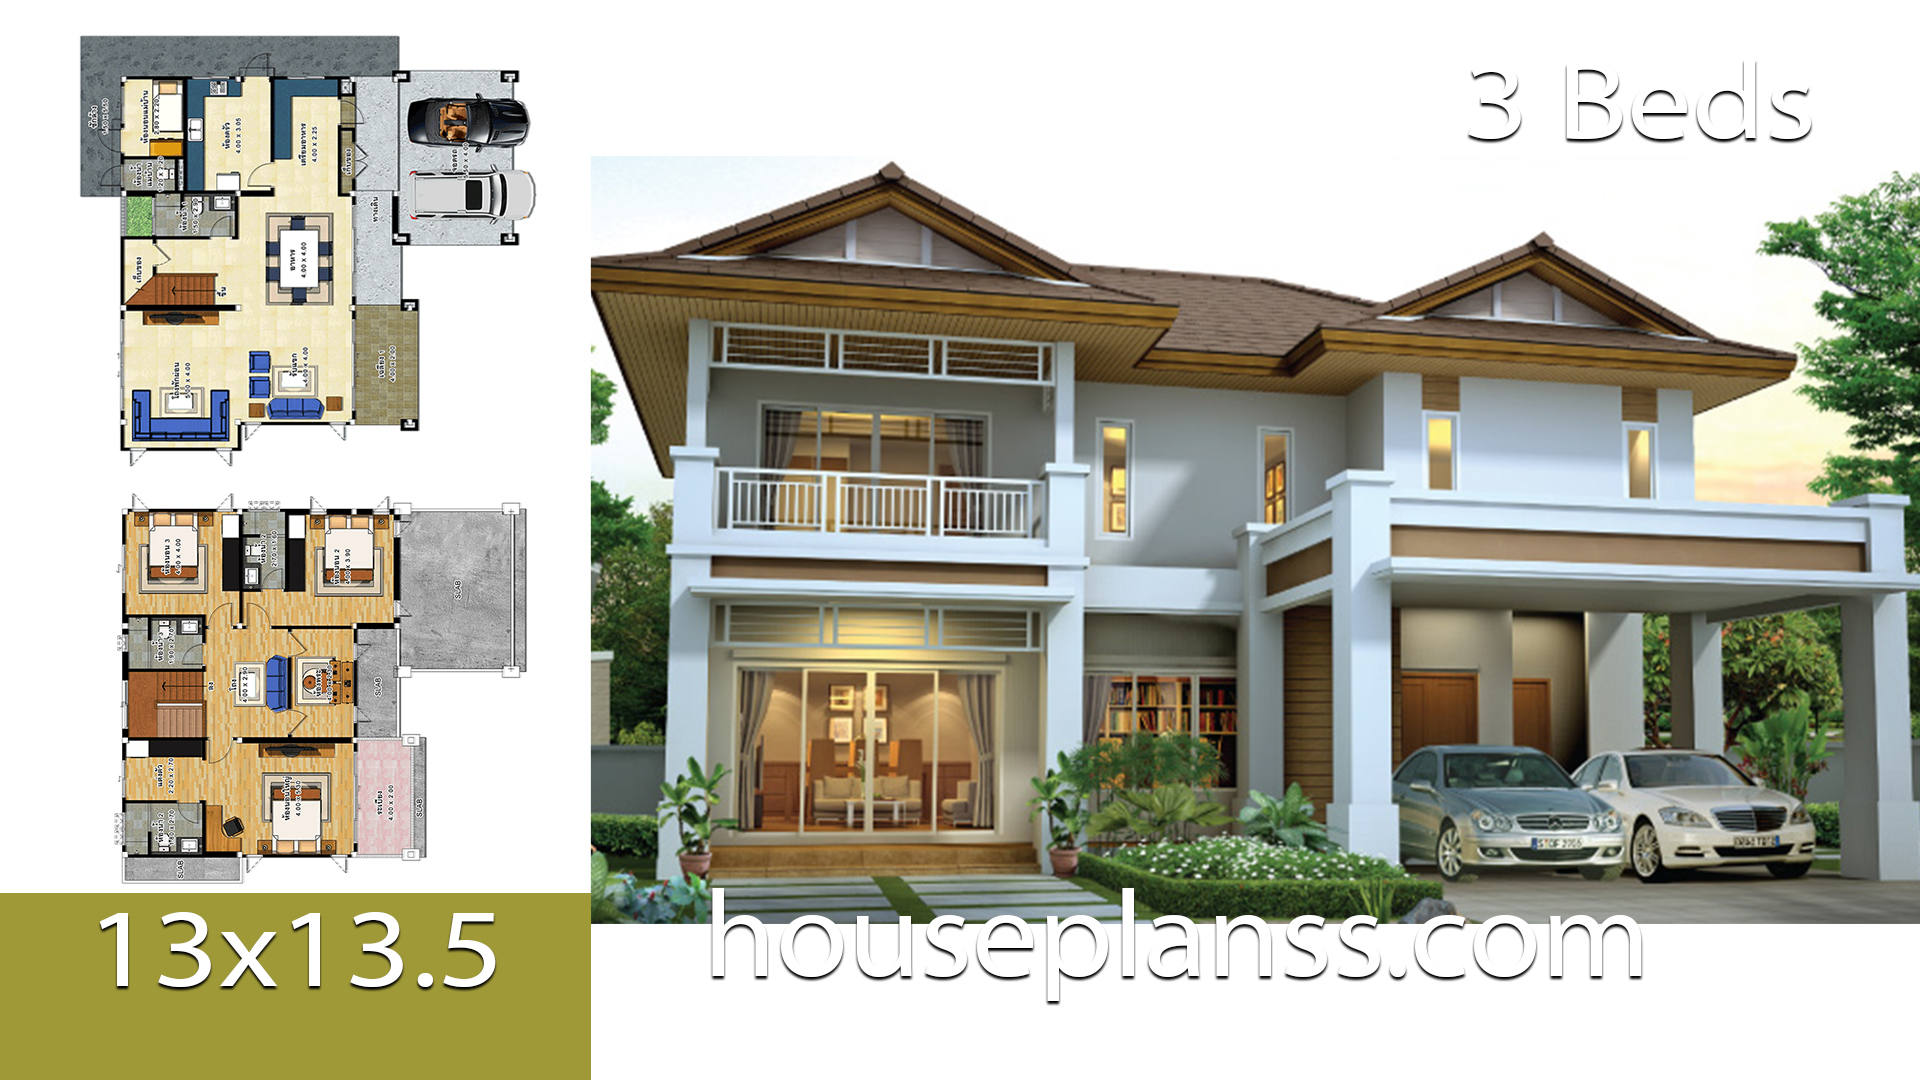 House design idea 13×13.5 with 3 bedrooms